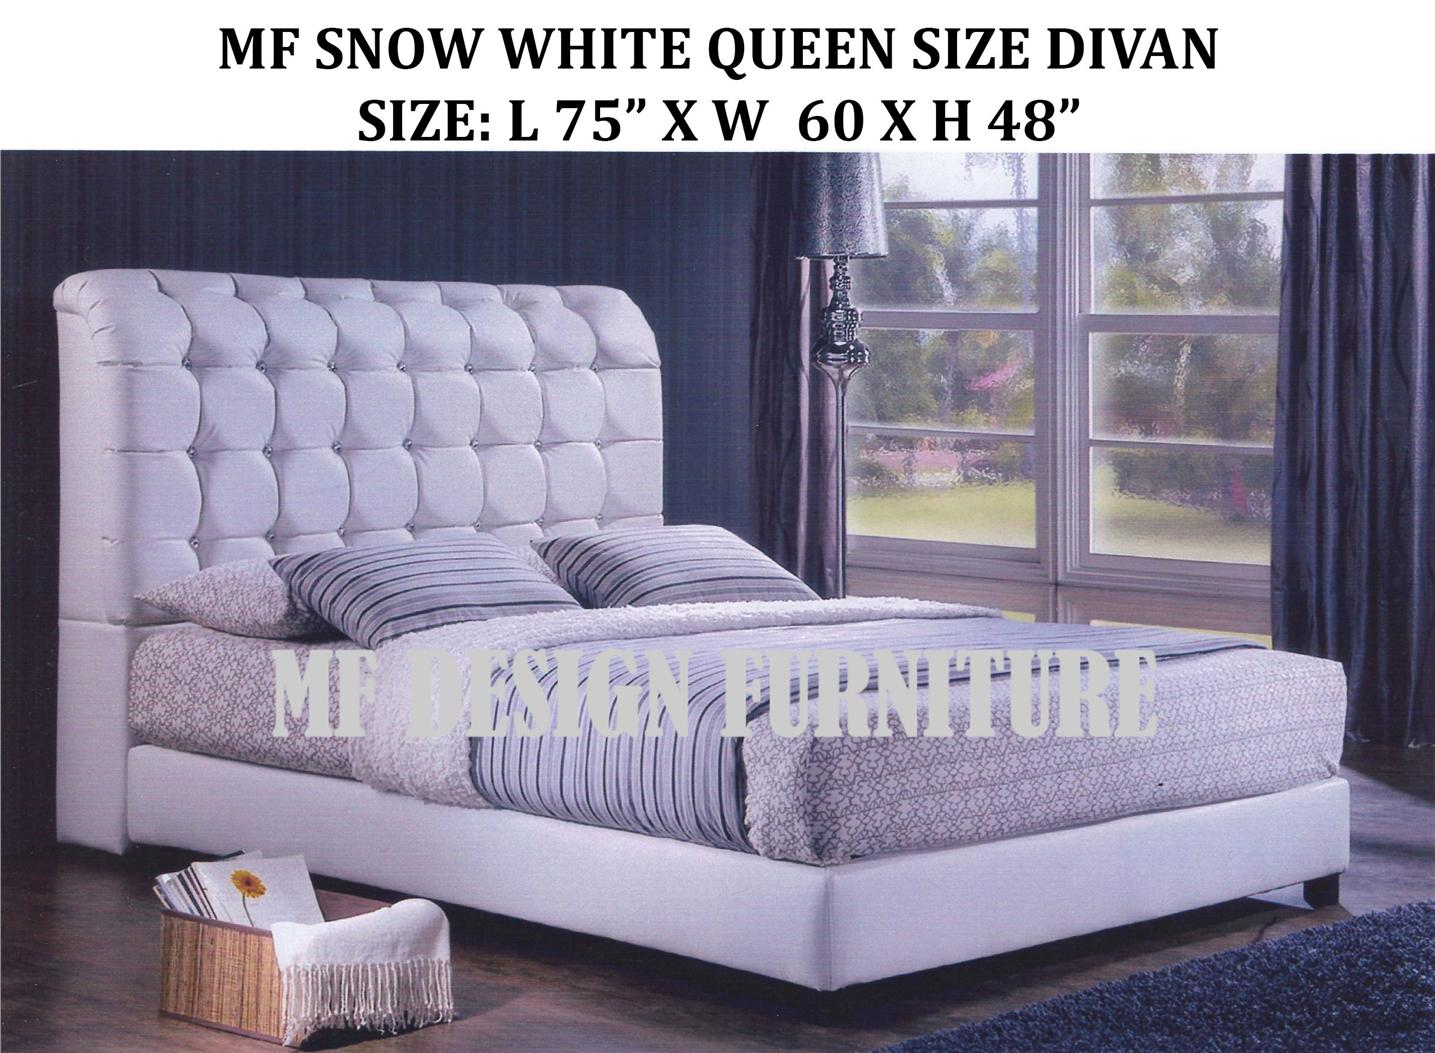 Mf design snow white queen si end 4 12 2016 6 15 pm myt for Queen size divan